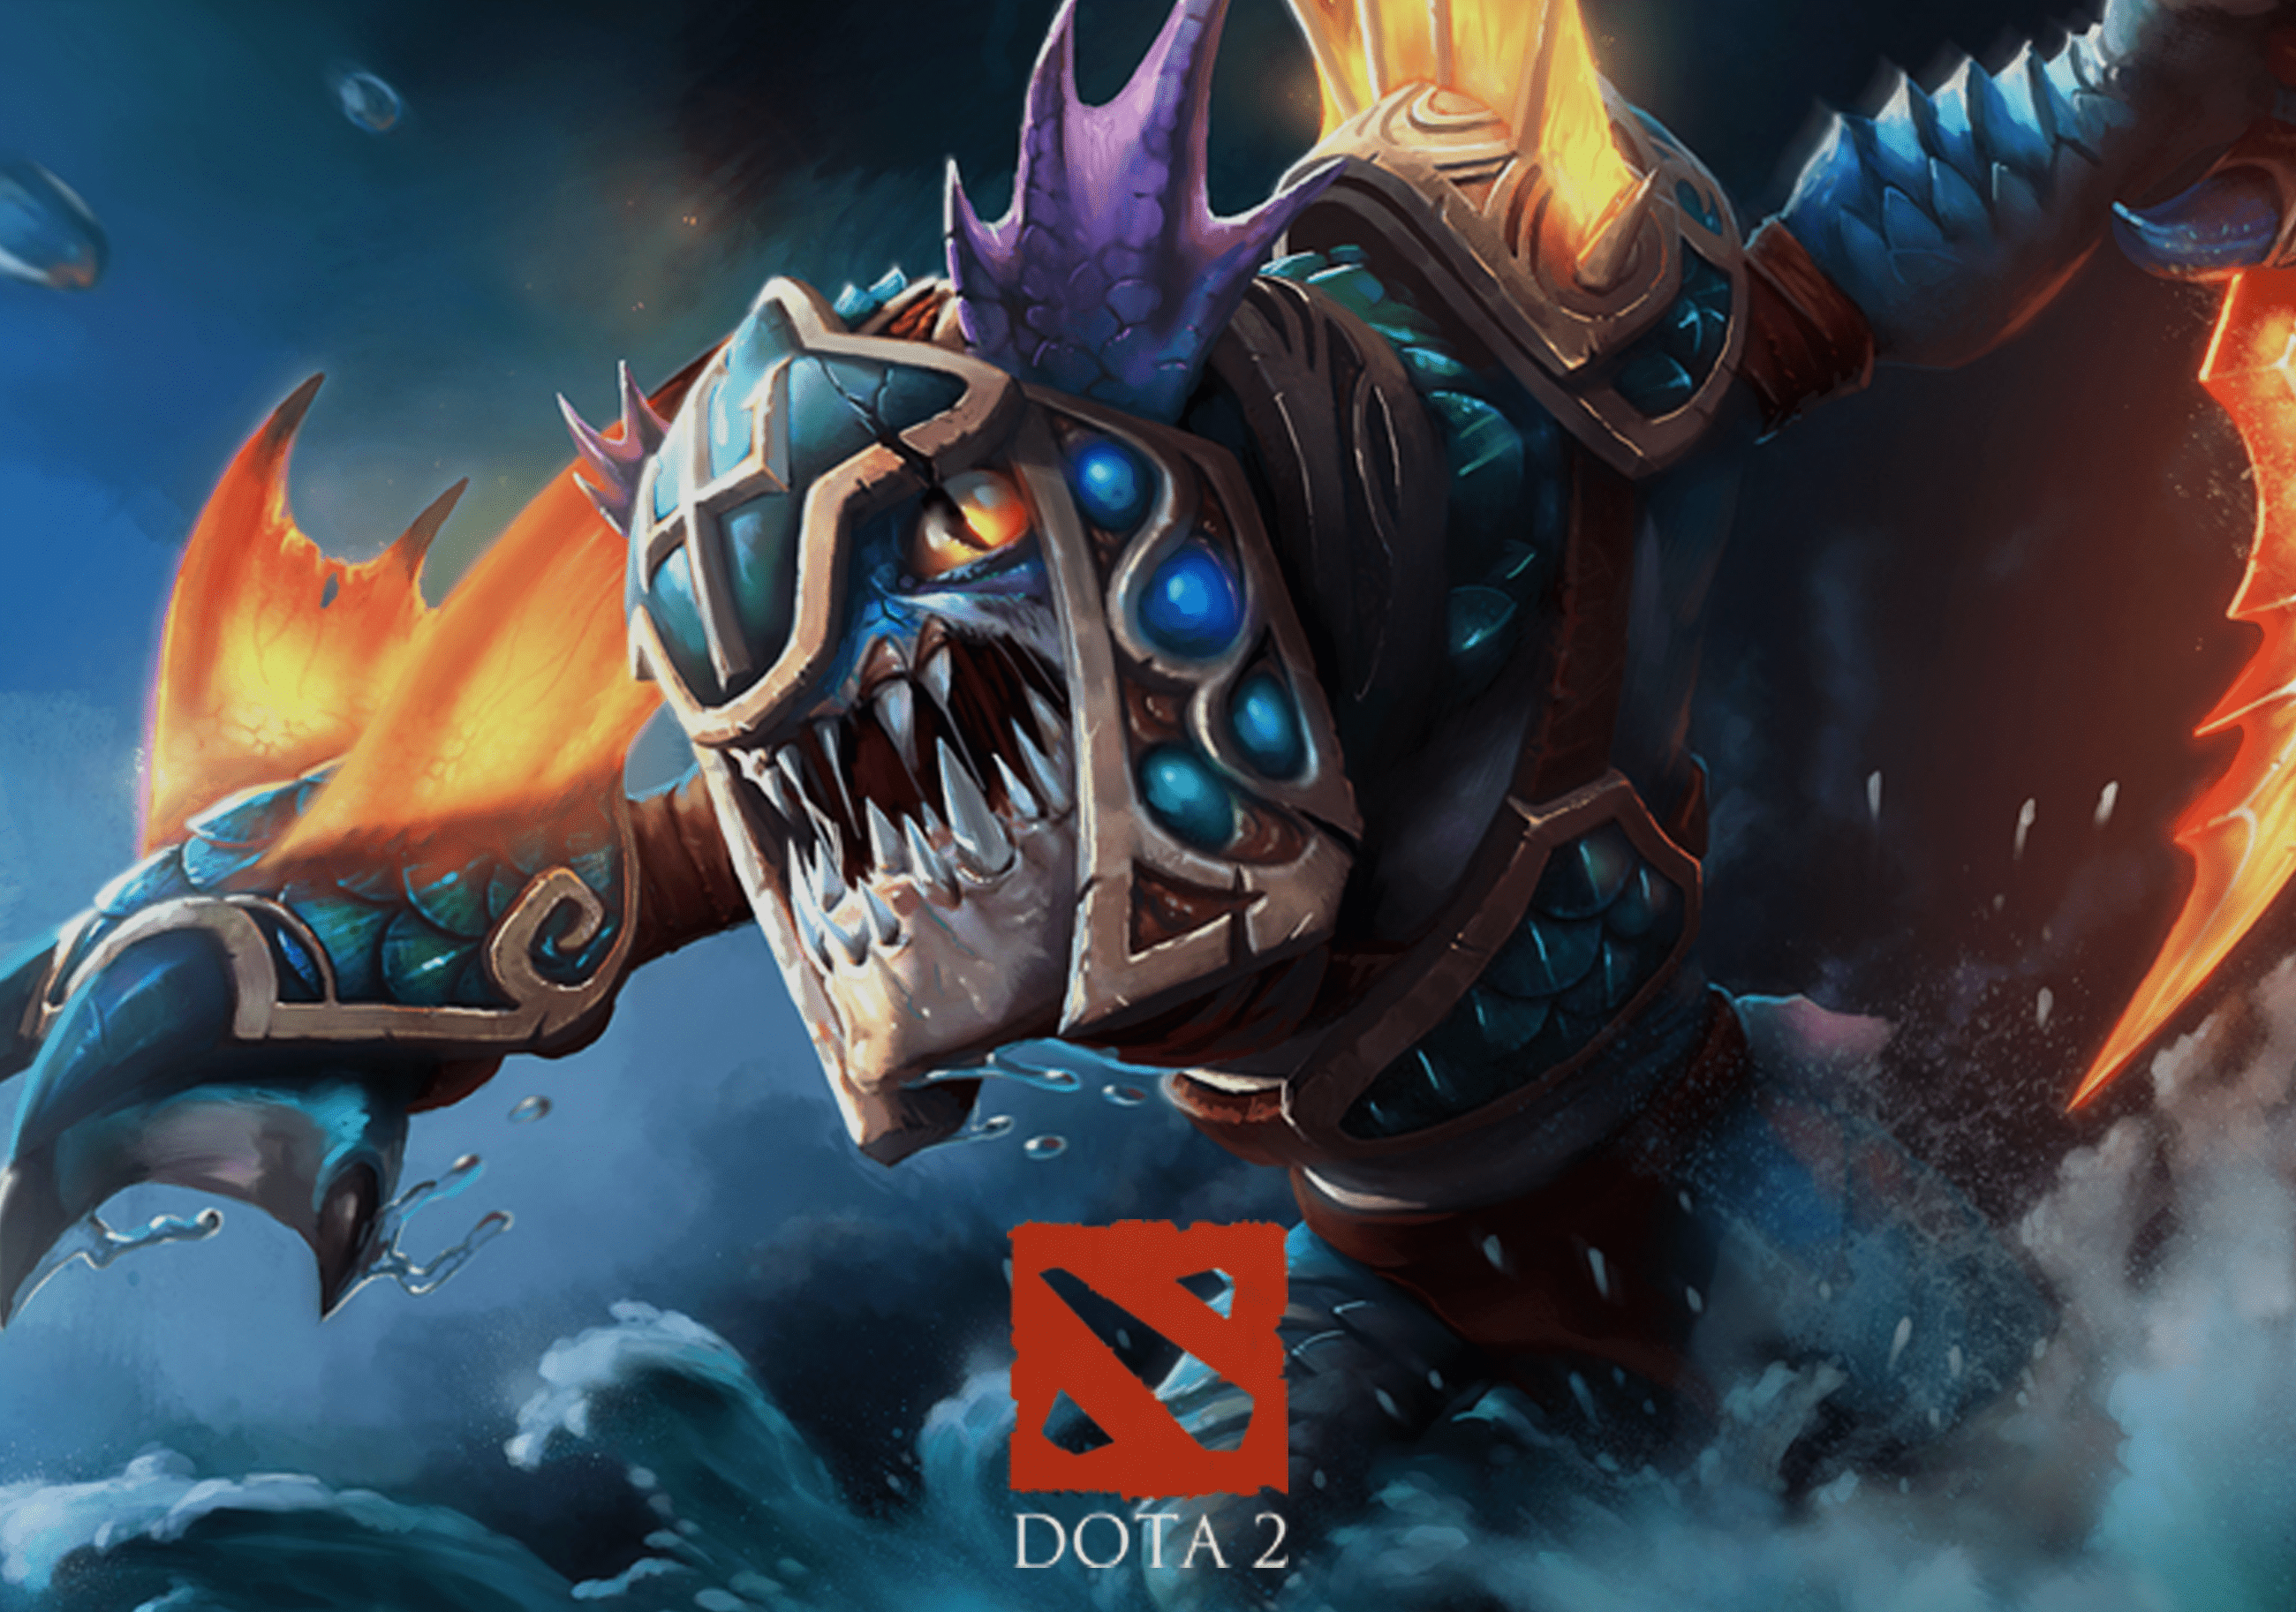 Dota 2 Promo with game logo in foreground